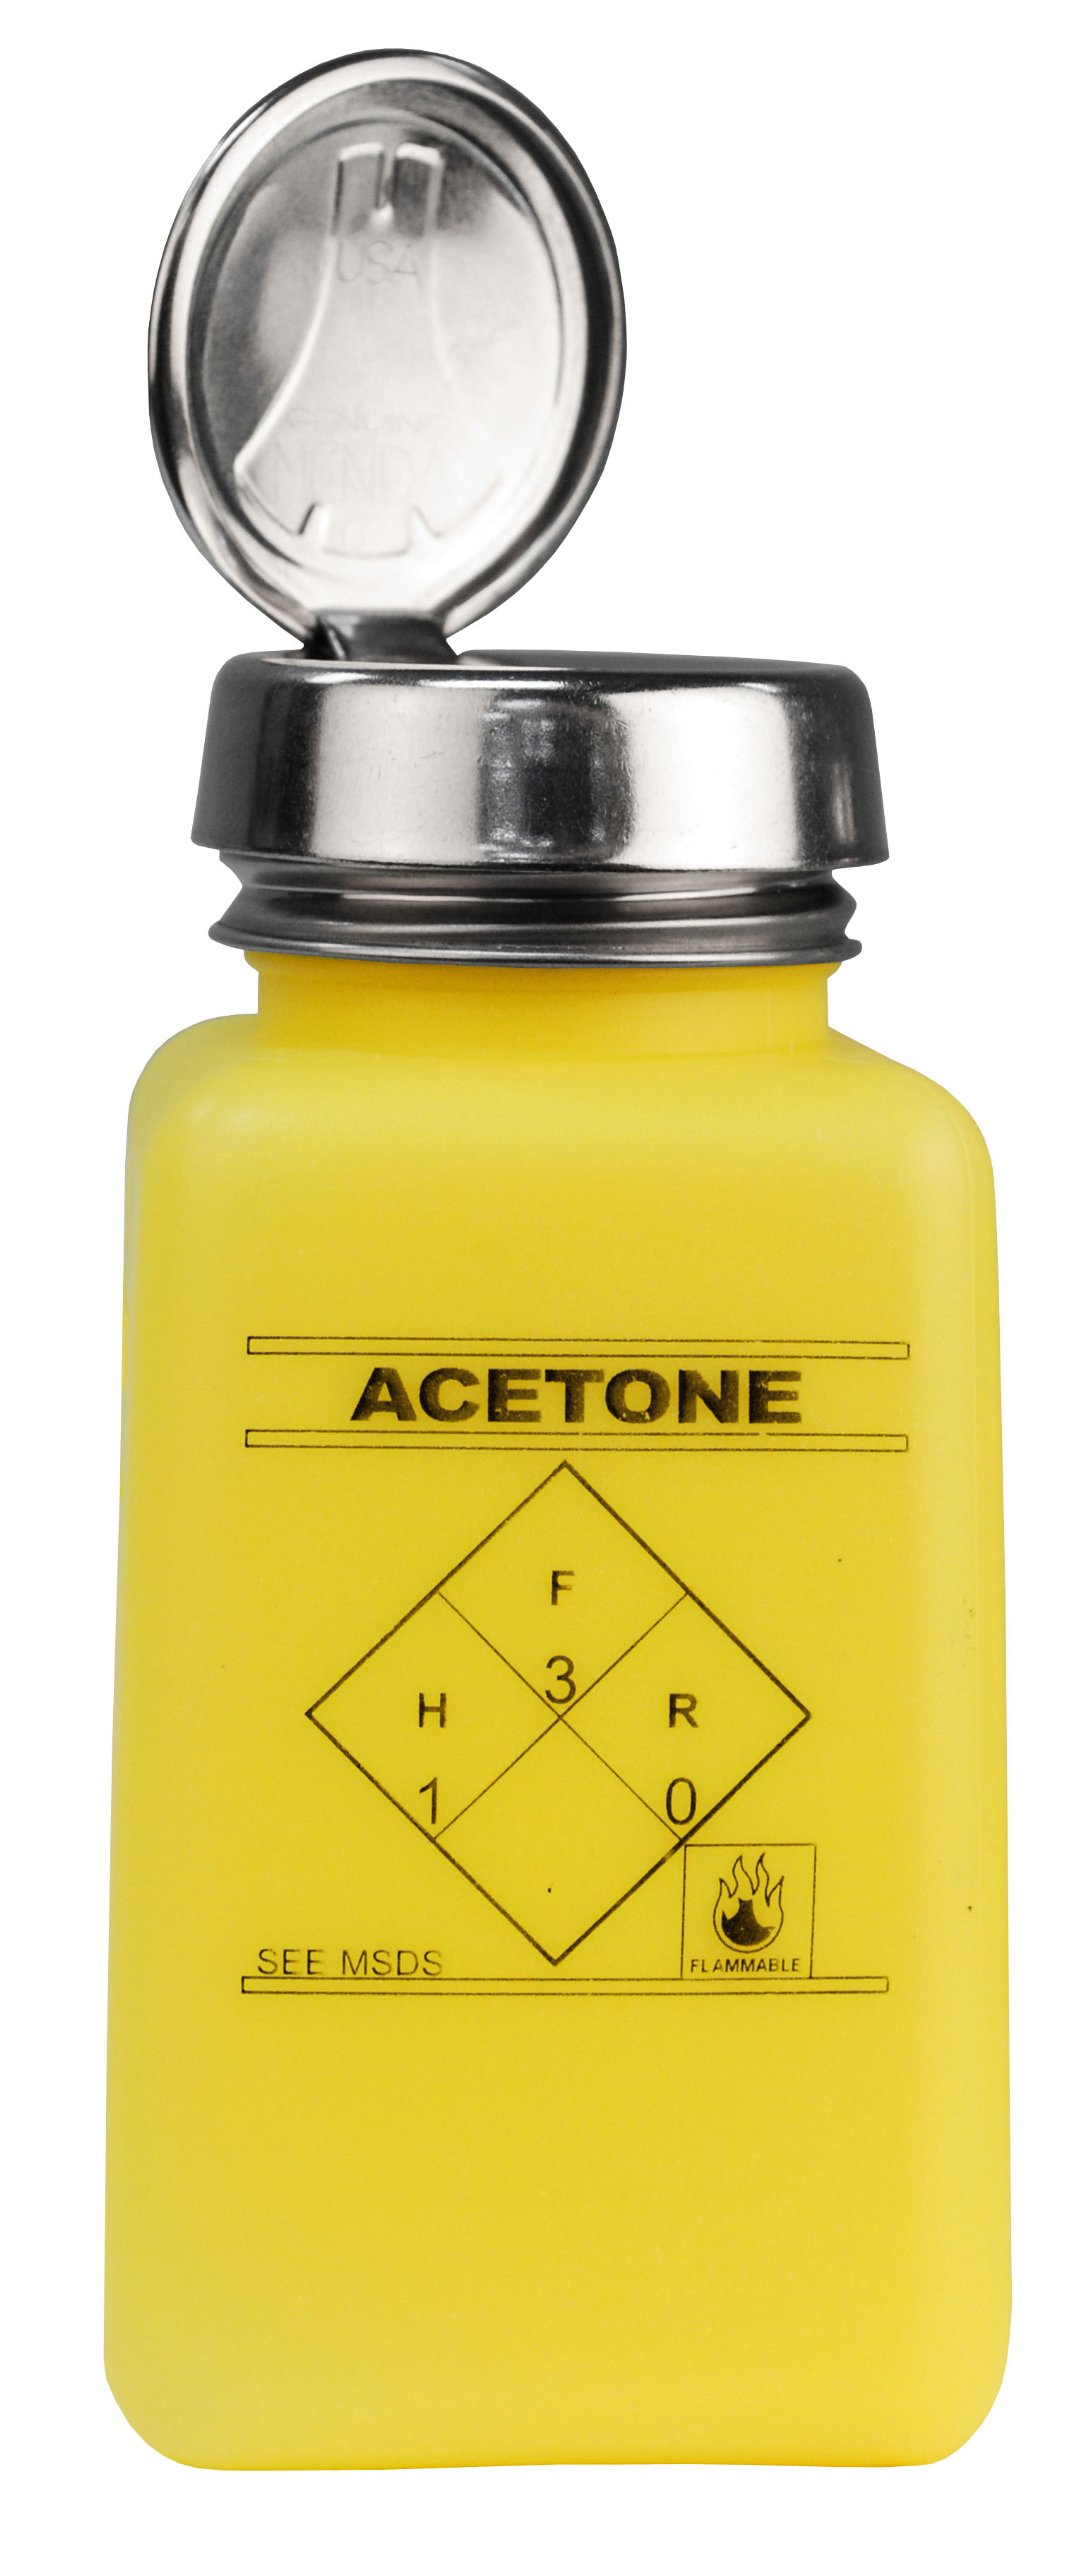 MENDA 35277 durAstatic HDPE ESD Safe One-Touch Pump Dissipative Bottle, Acetone Printed, Yellow, 6 oz Volume